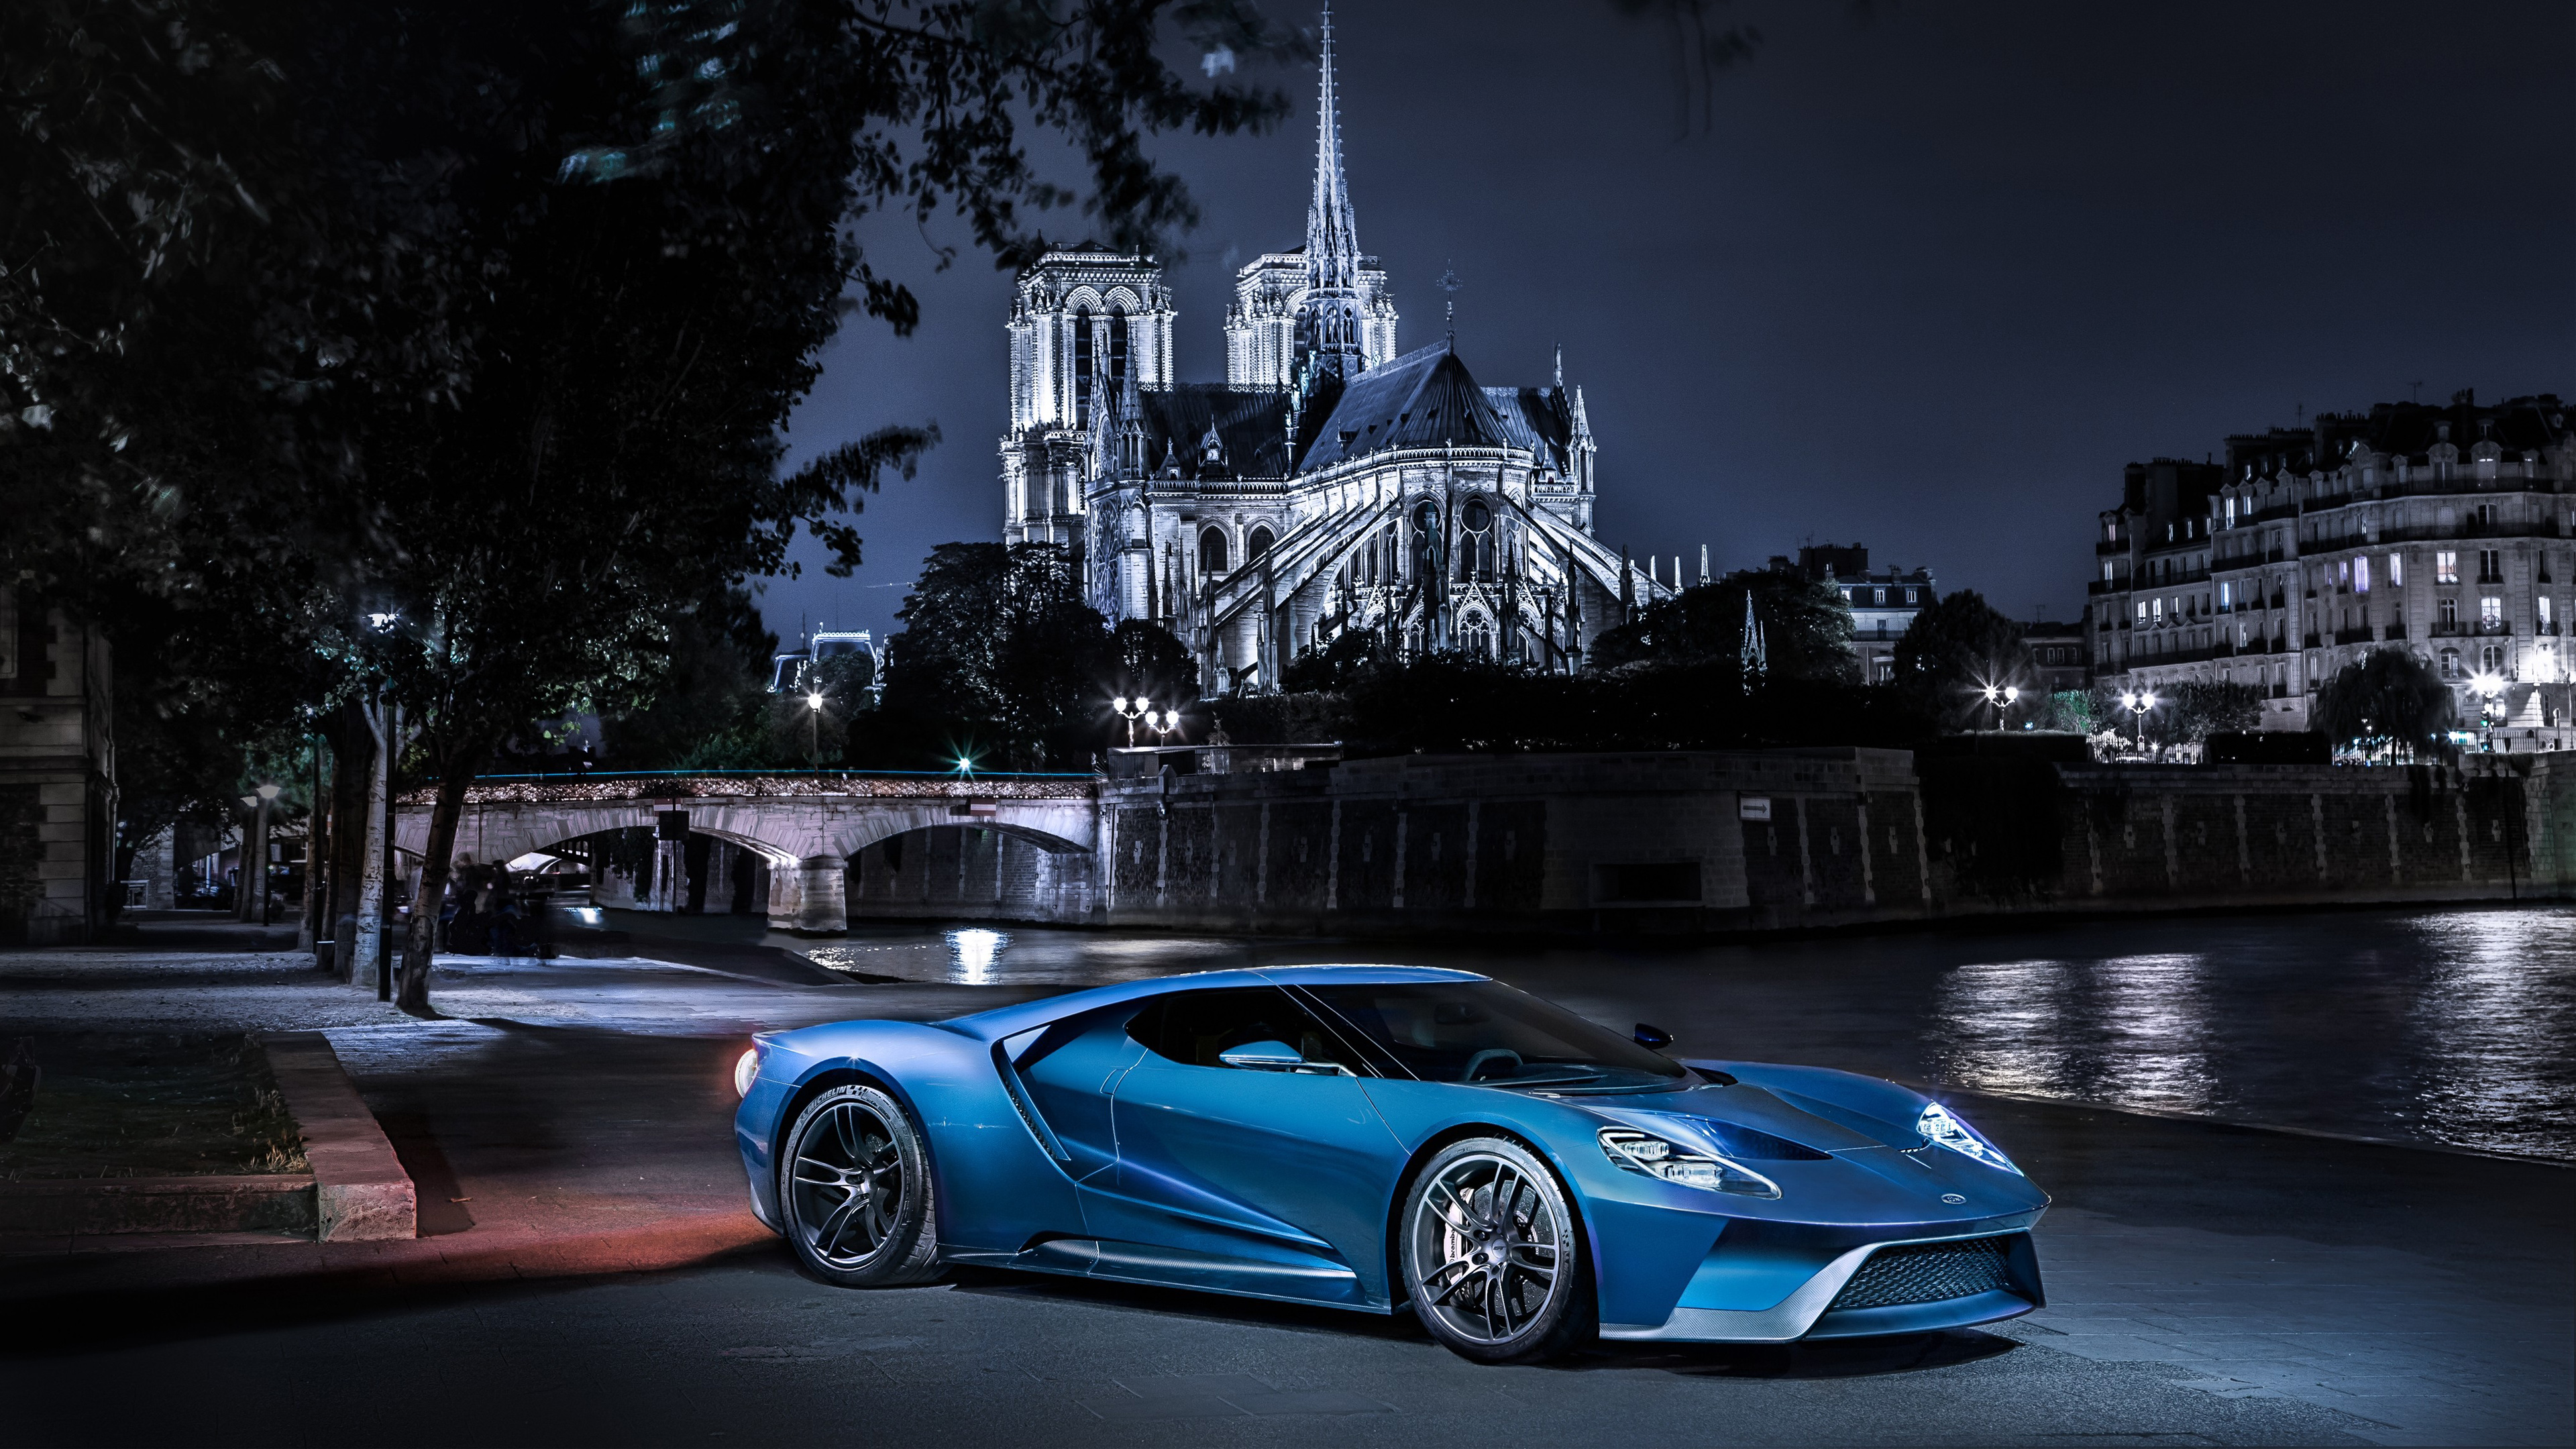 Ford Gt Supercar Wallpaper Hd Car Wallpapers Id 6215